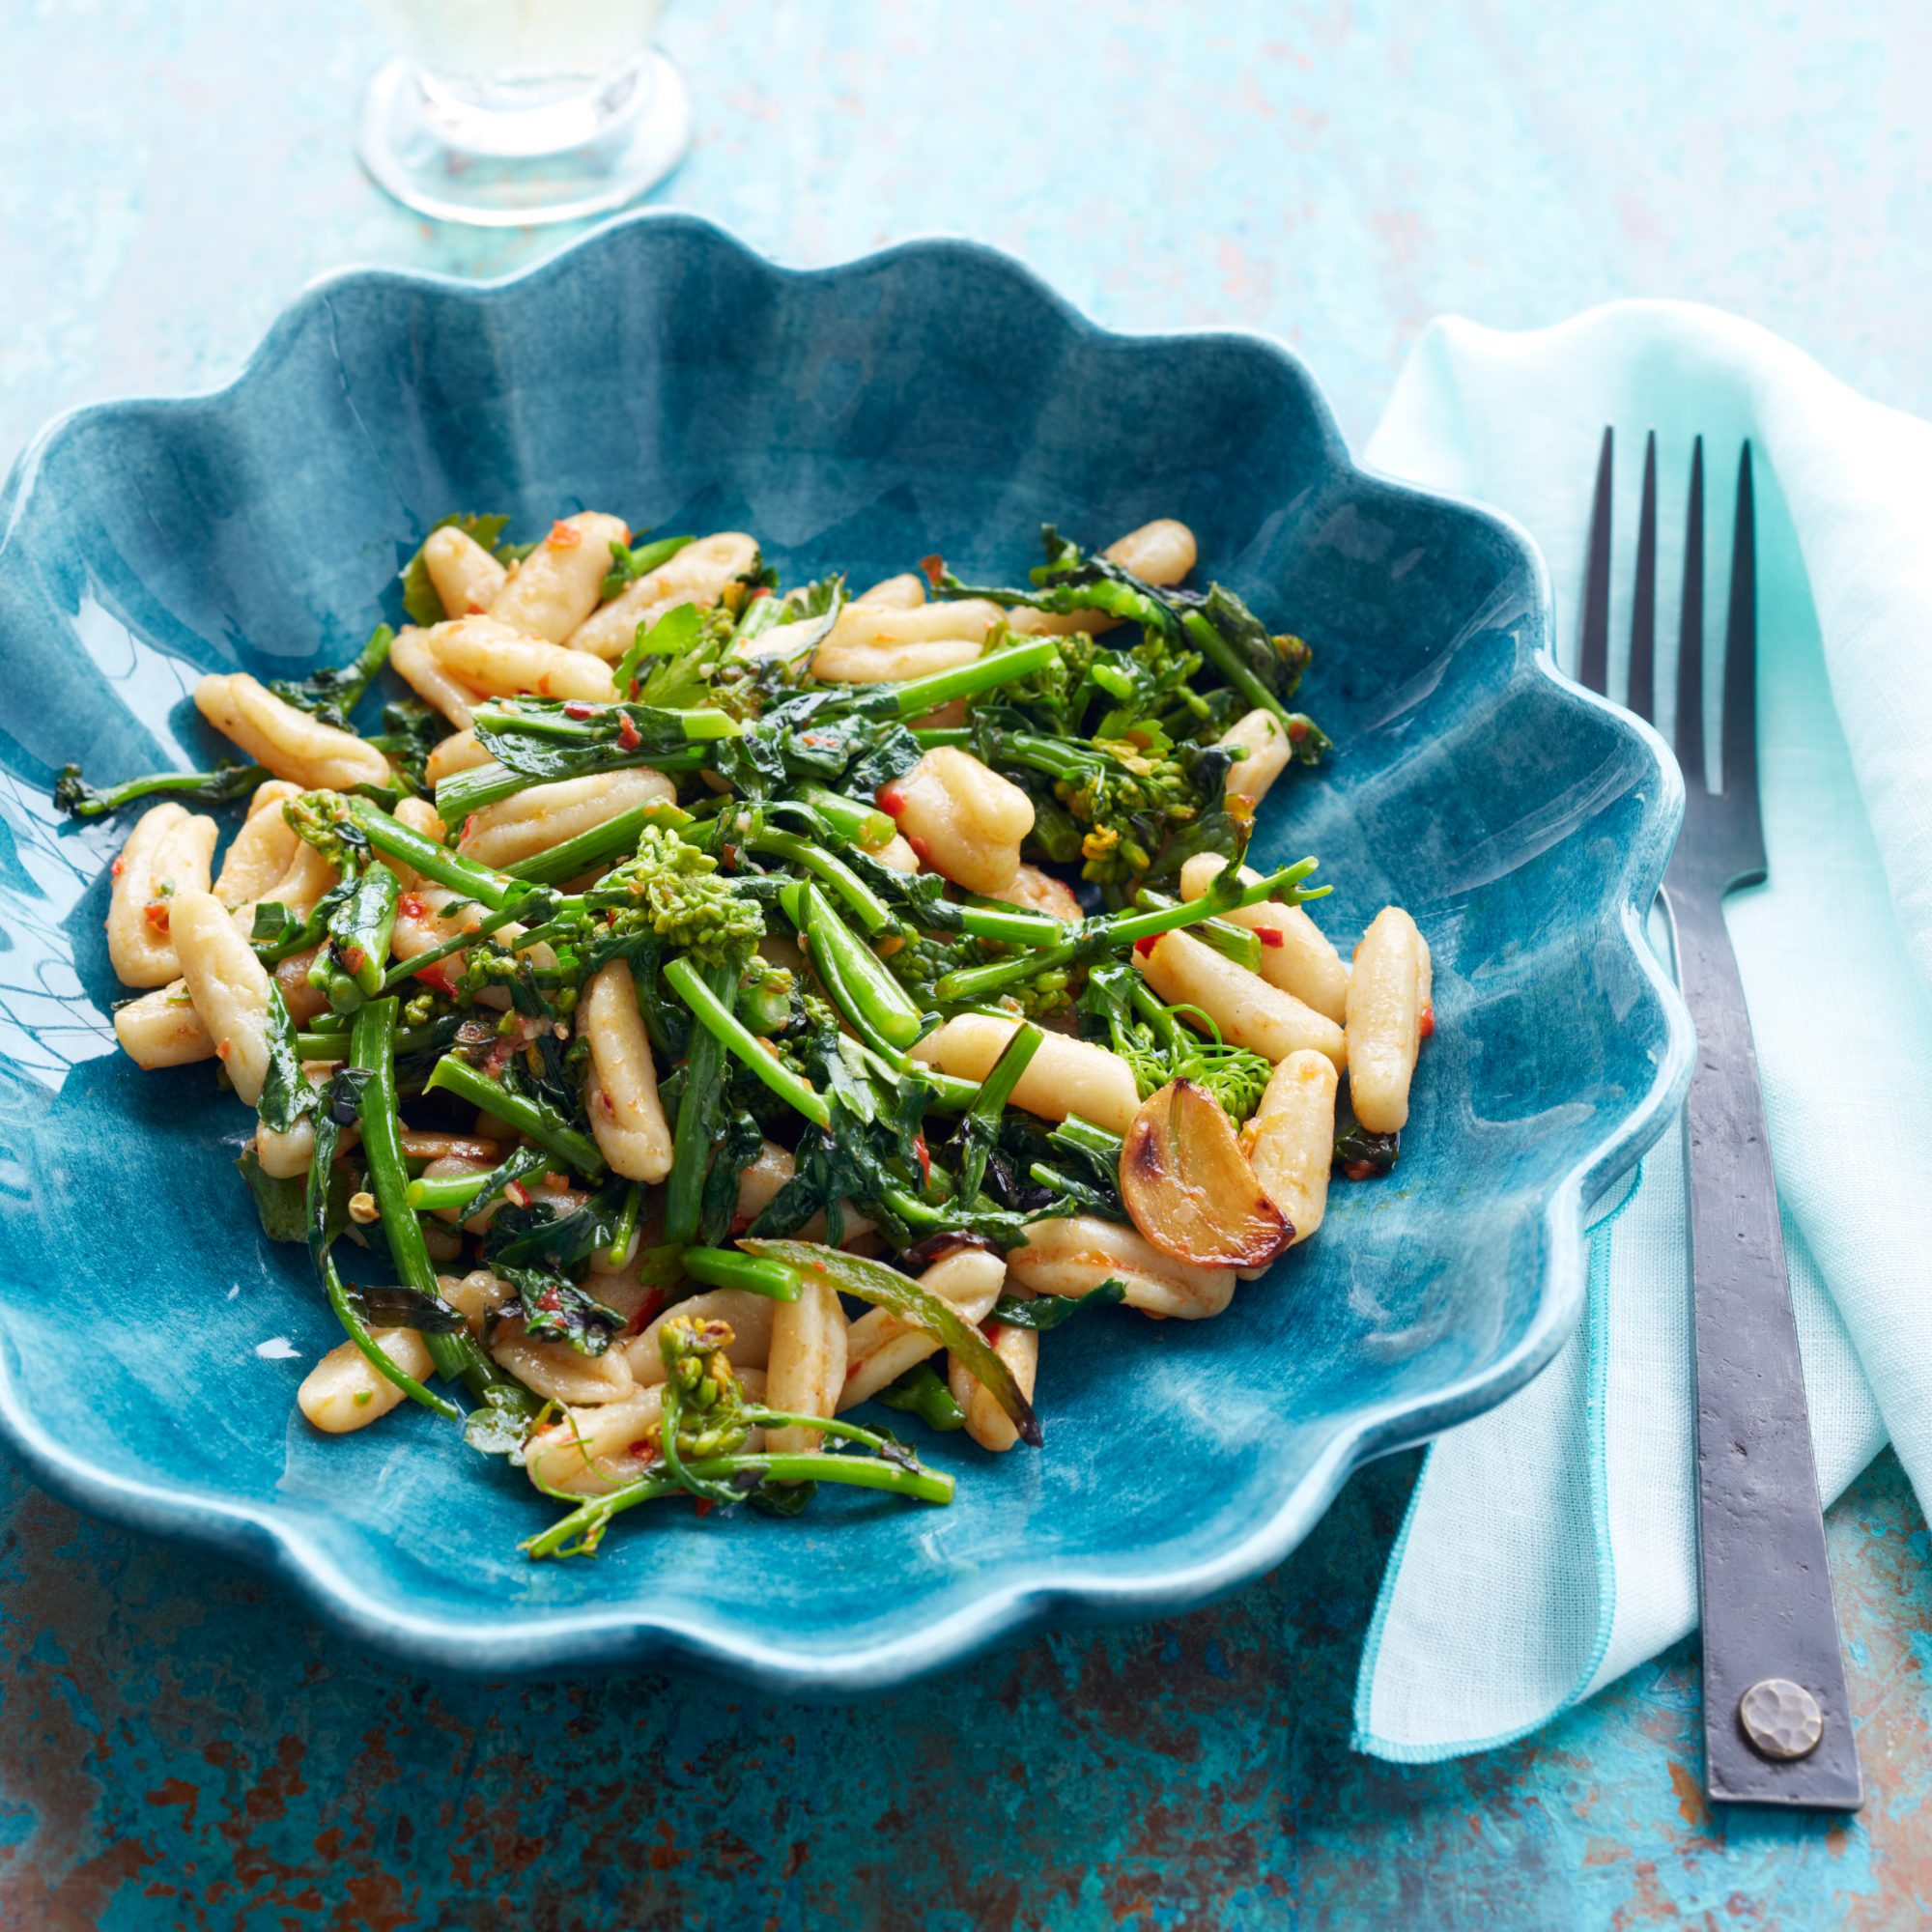 original-201308-r-cavatelli-with-roasted-broccoli-rabe-and-harissa.jpg